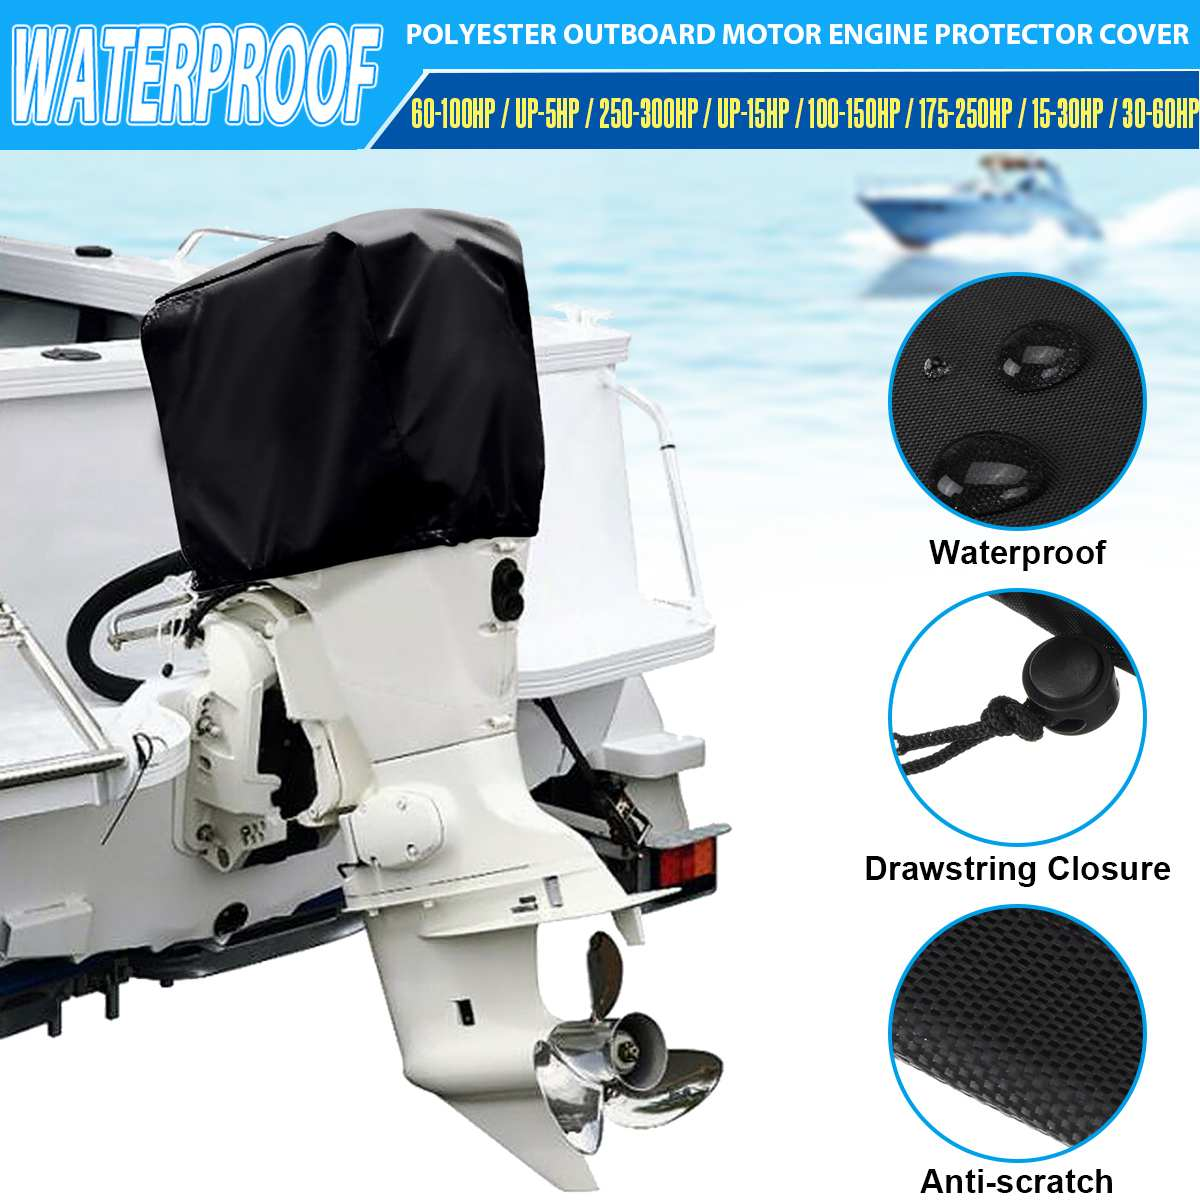 Marine Outboard Motor Boat Engine Cover UV Protector Rain Cover Suits 2-5 HP